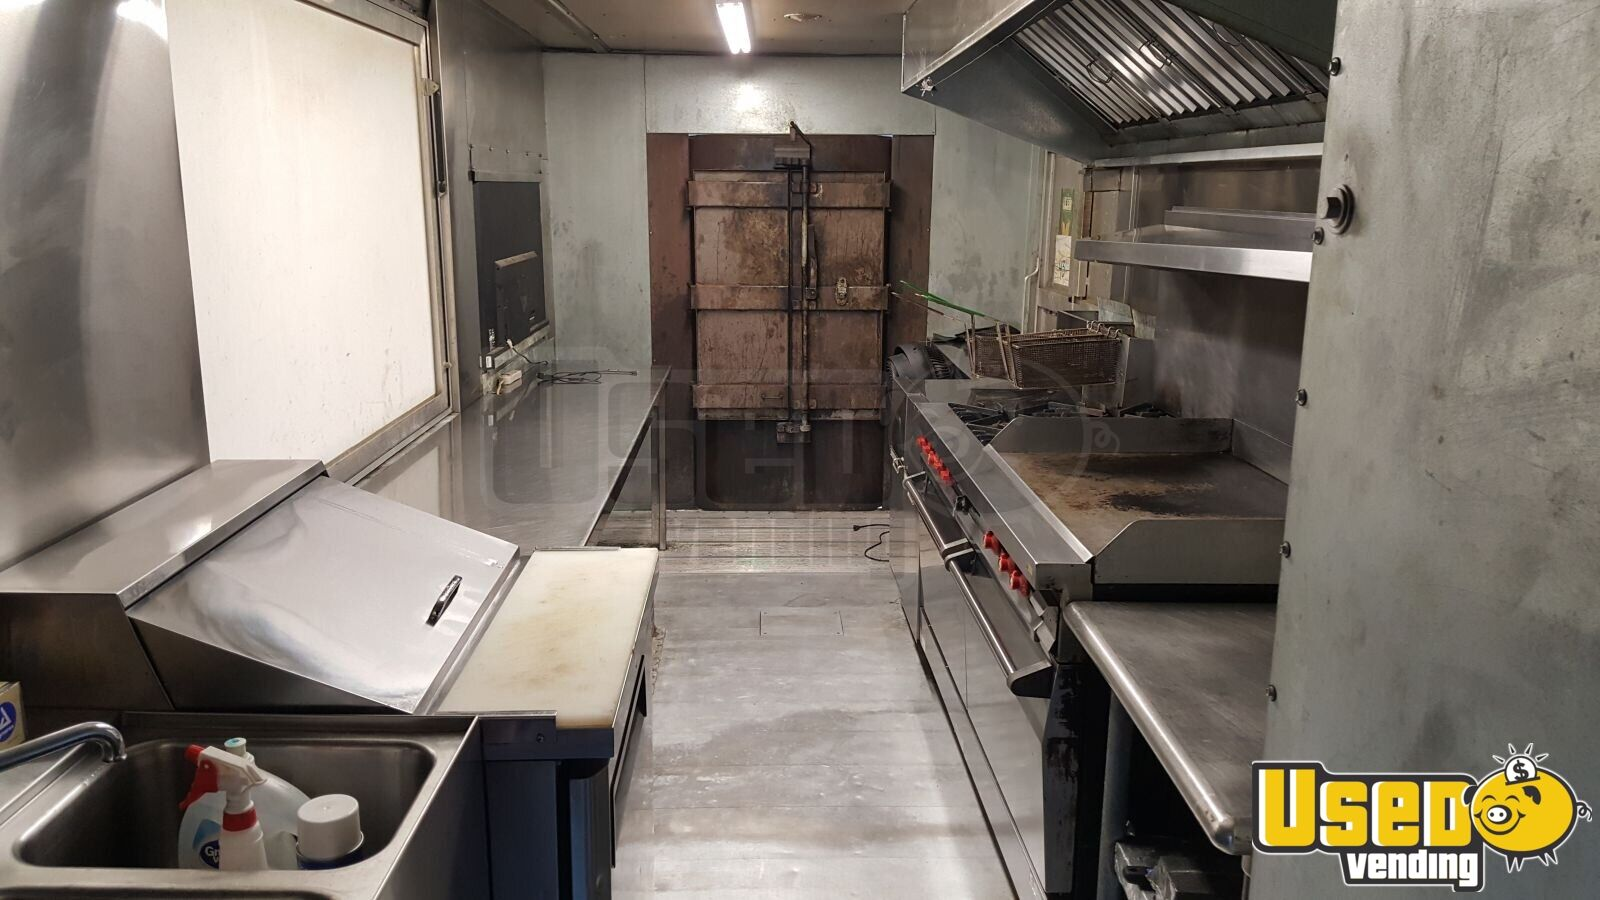 2005 Workhorse Custom Chassis Barbecue Food Truck Propane Tank New York Diesel Engine for Sale - 8